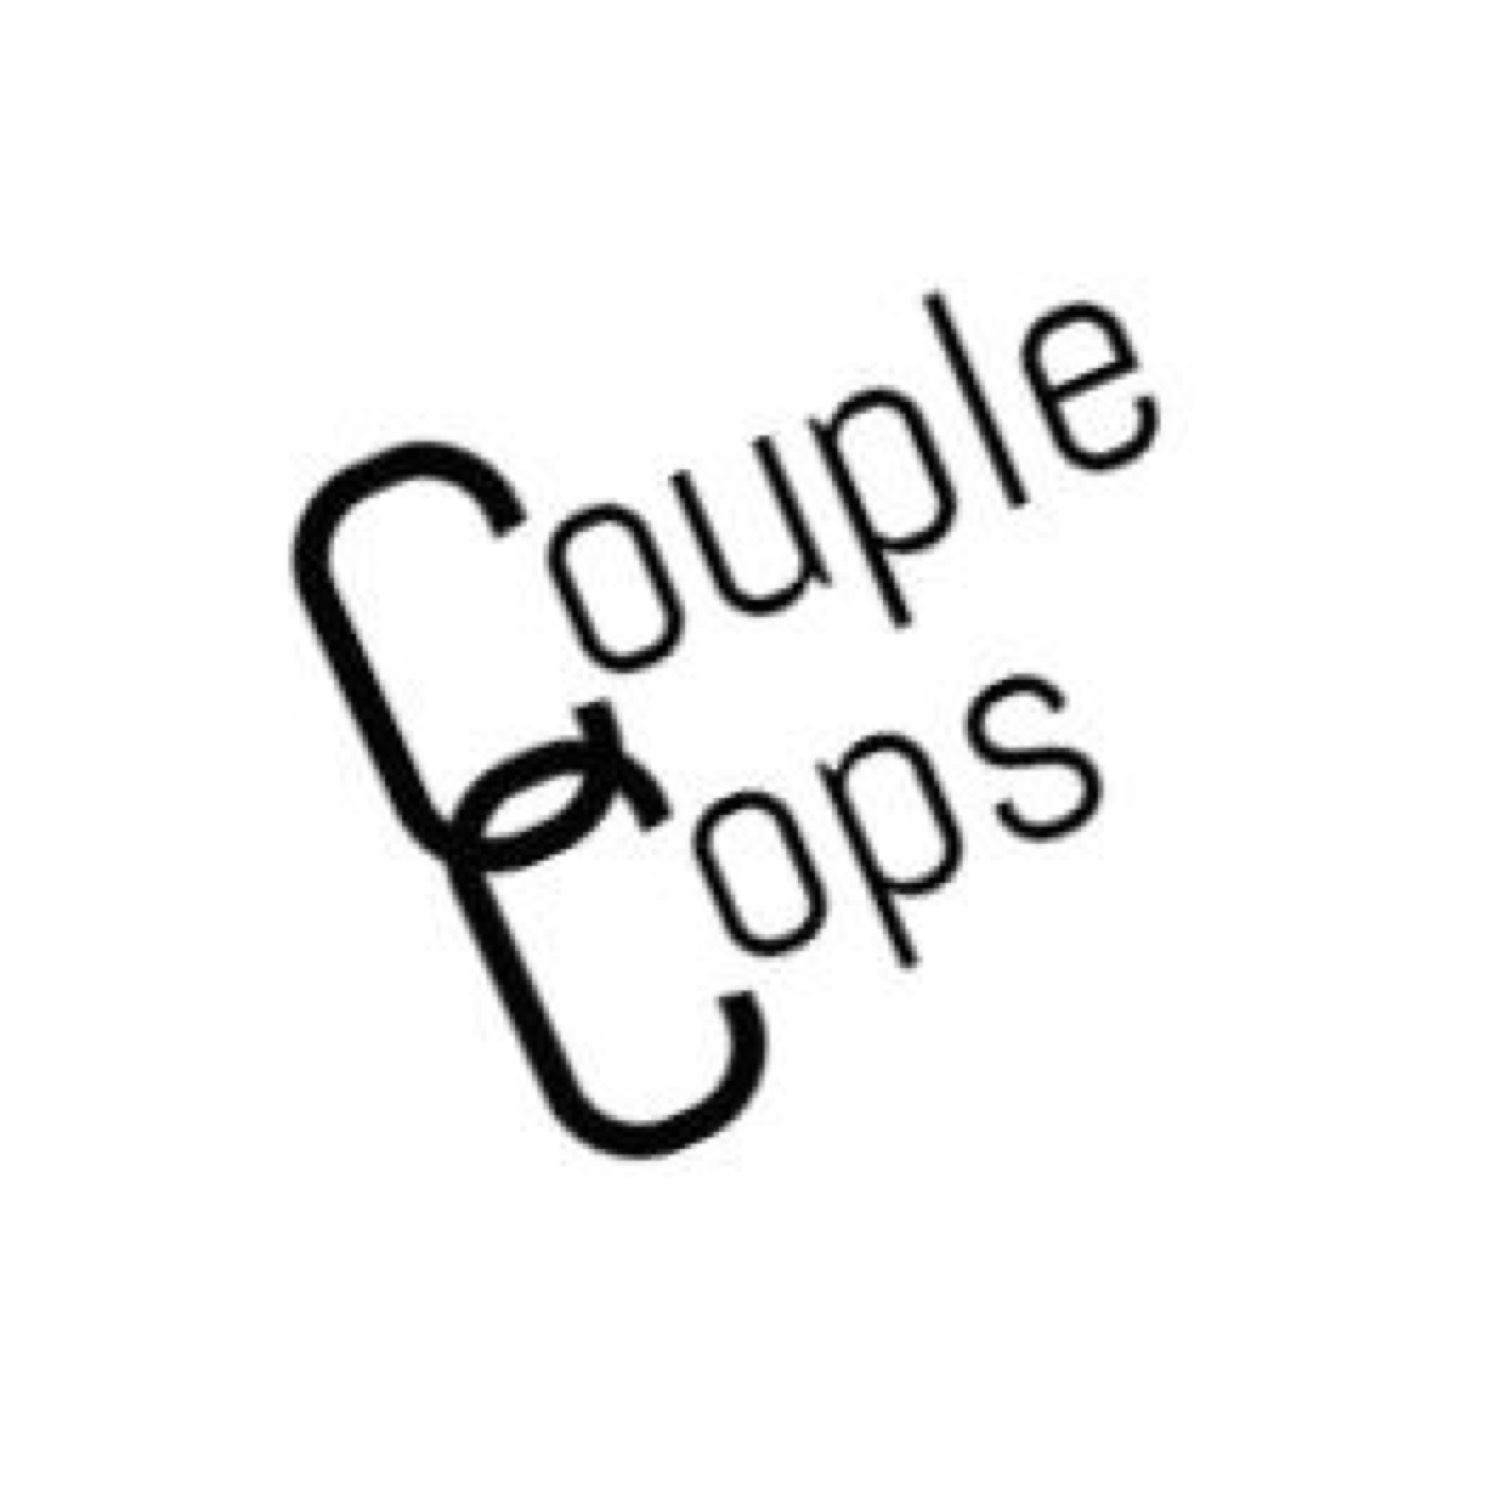 Bump profile picture for @couplecops